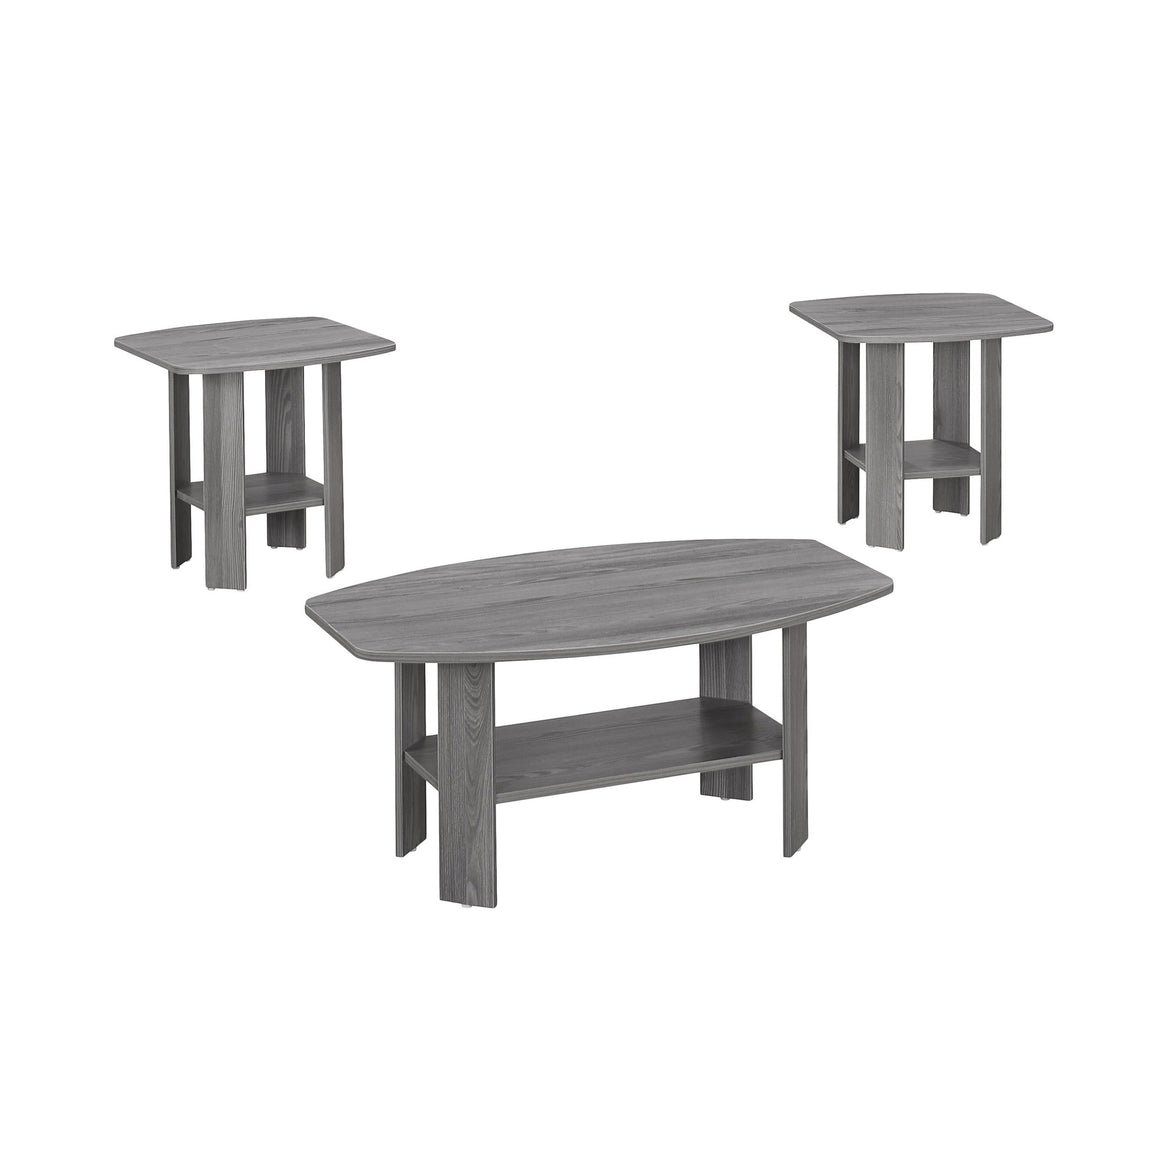 Presslyn 3pcs Table Set Grey